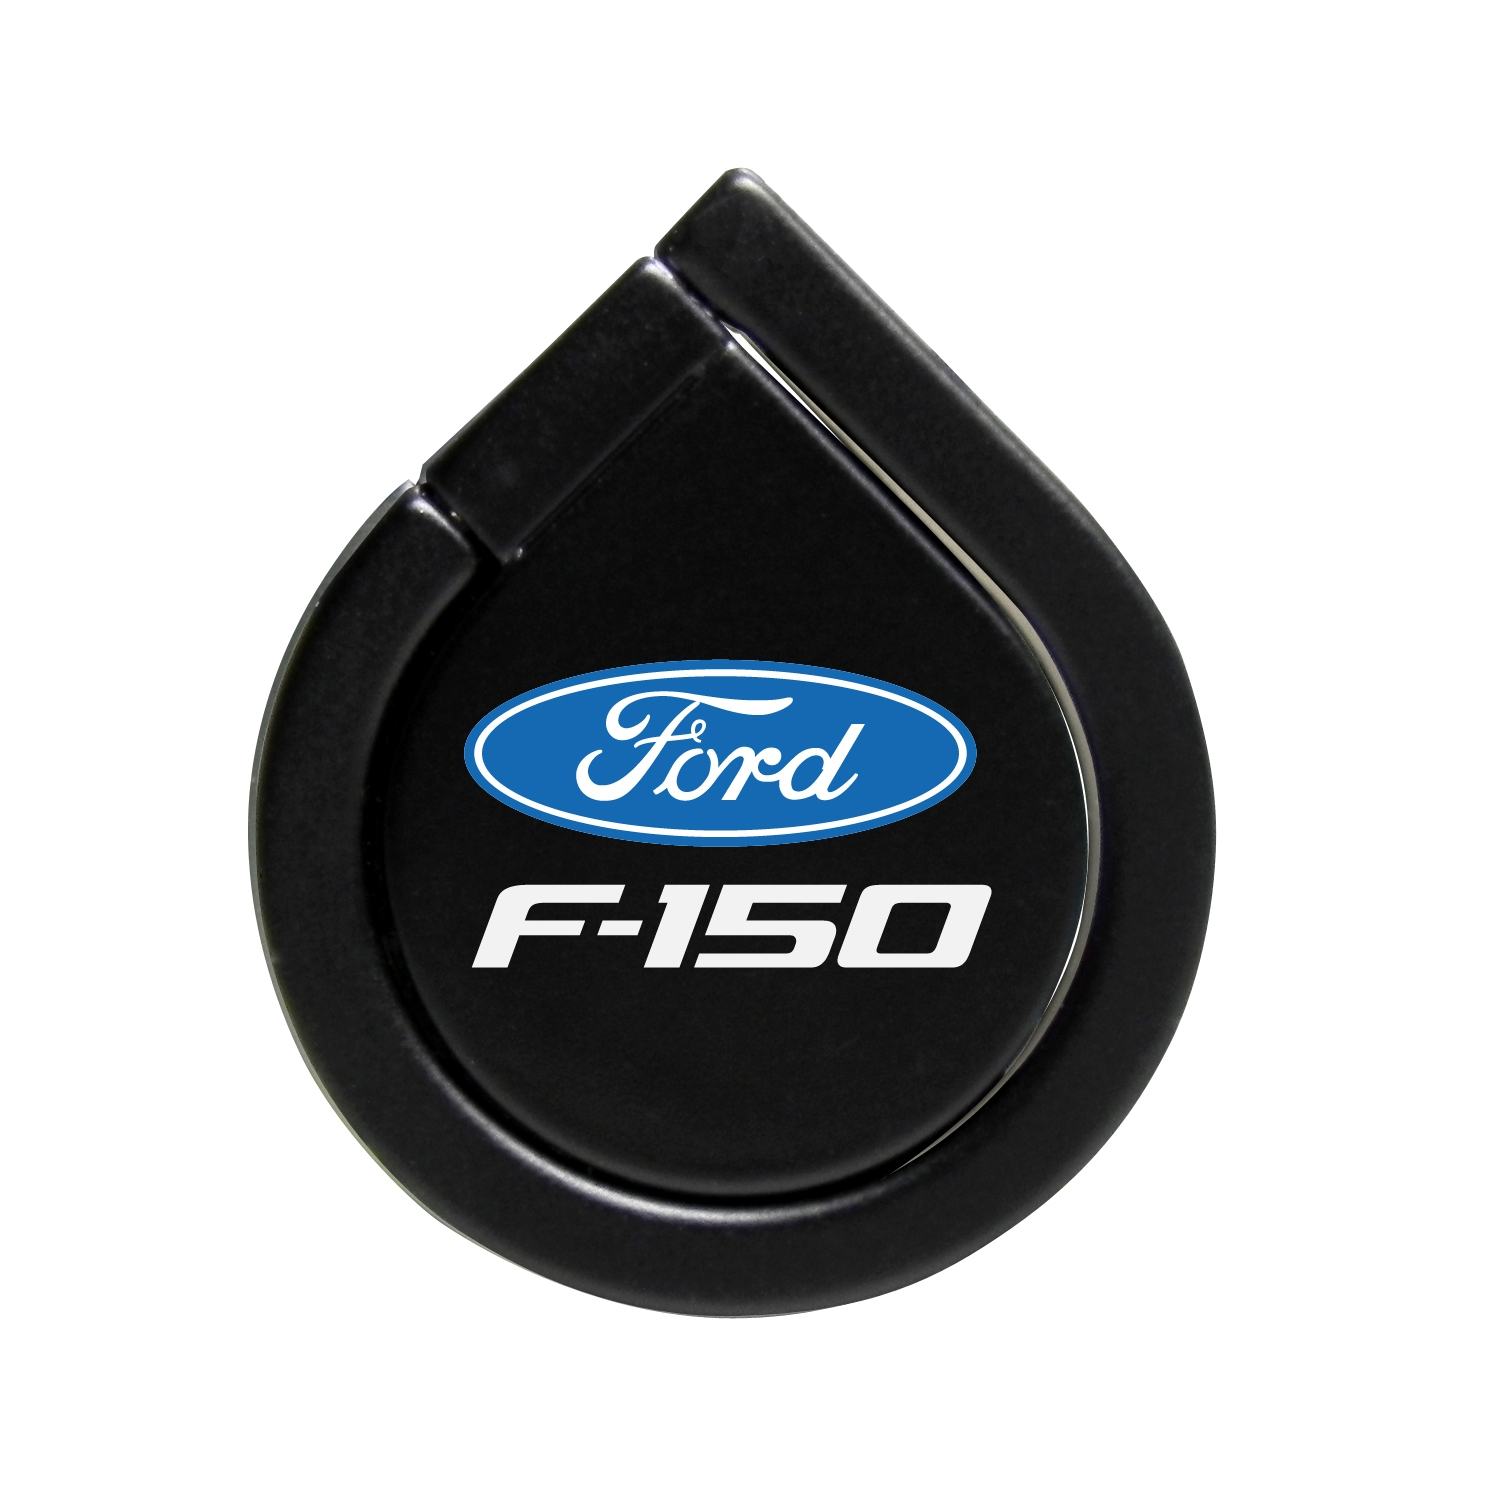 Ford F-150 Black 360 Degree Rotation Finger Ring Holder for Cell Phone